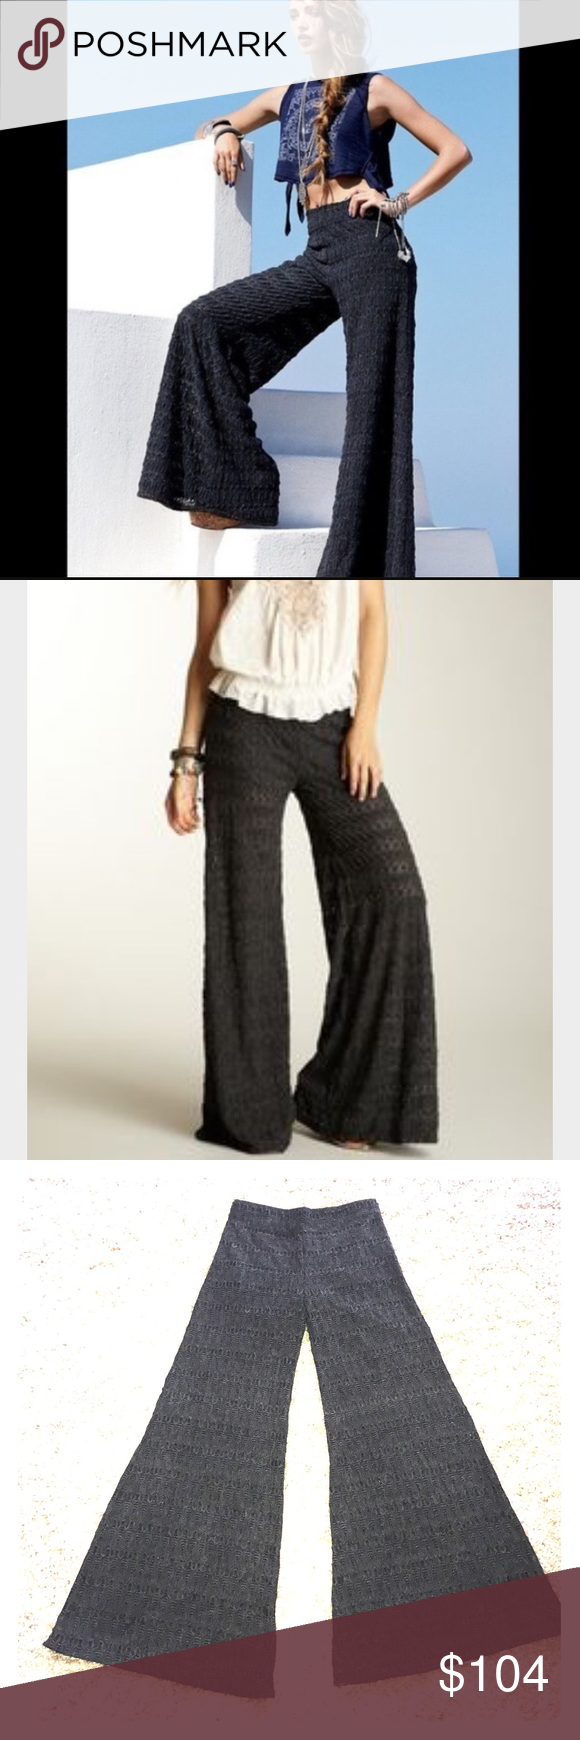 "🦋 FREE PEOPLE PANTS Like new wide flare lace pants size-0  in dark gray color, has little under shorts.  Waist-14"" inseam-31"" Free People Pants"